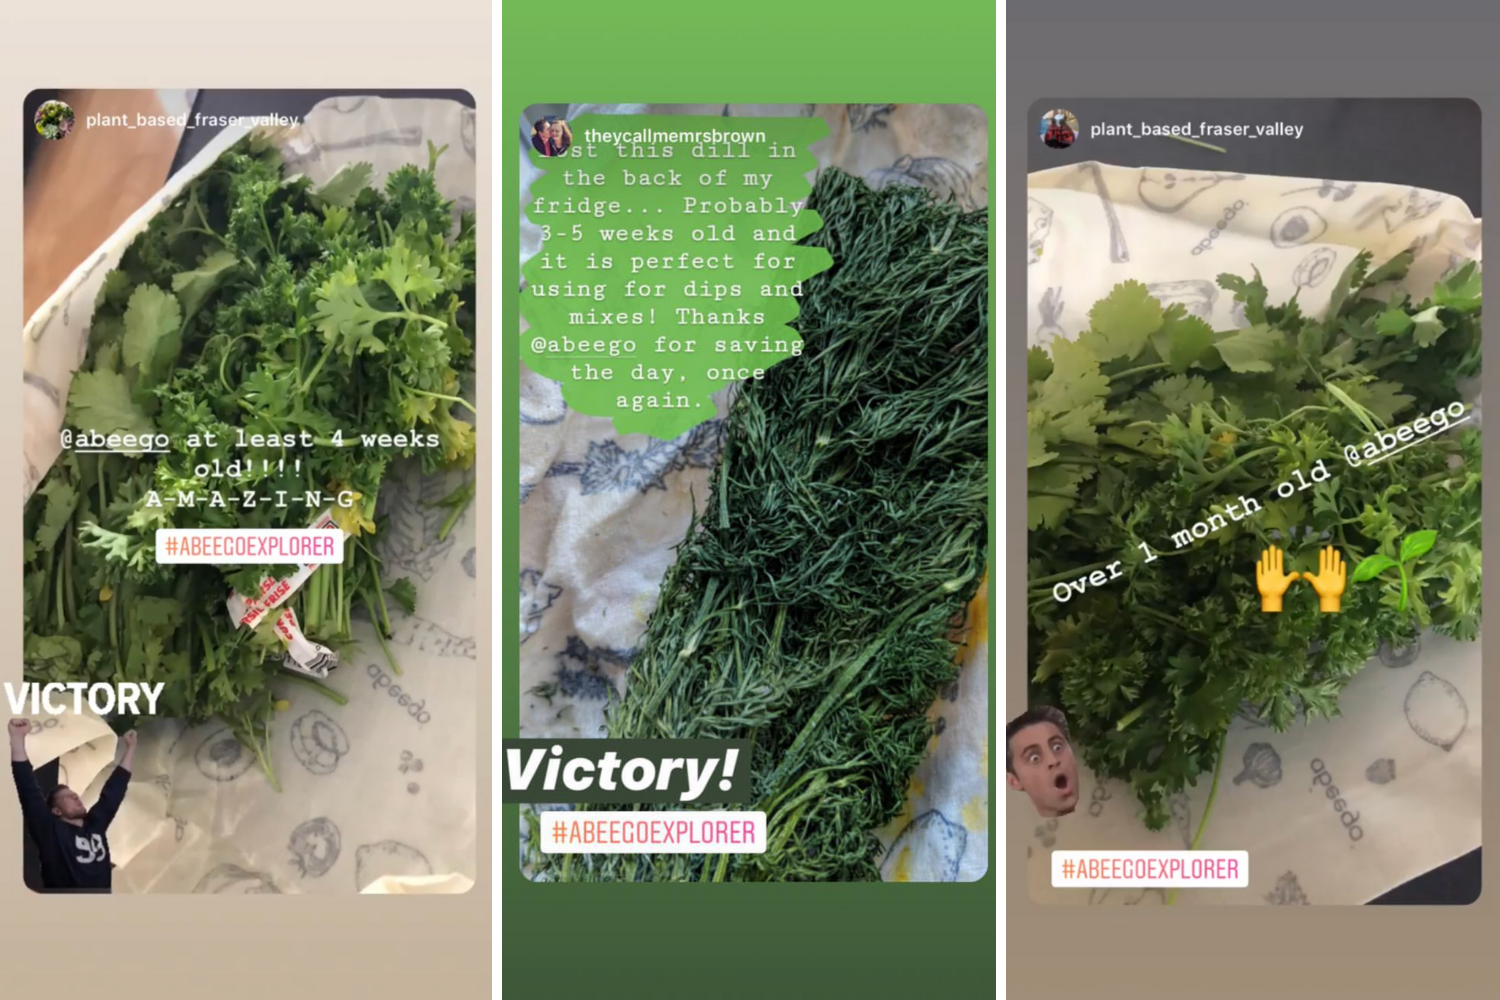 Abeego Explorers on Instagram share their Avocado Expedition results